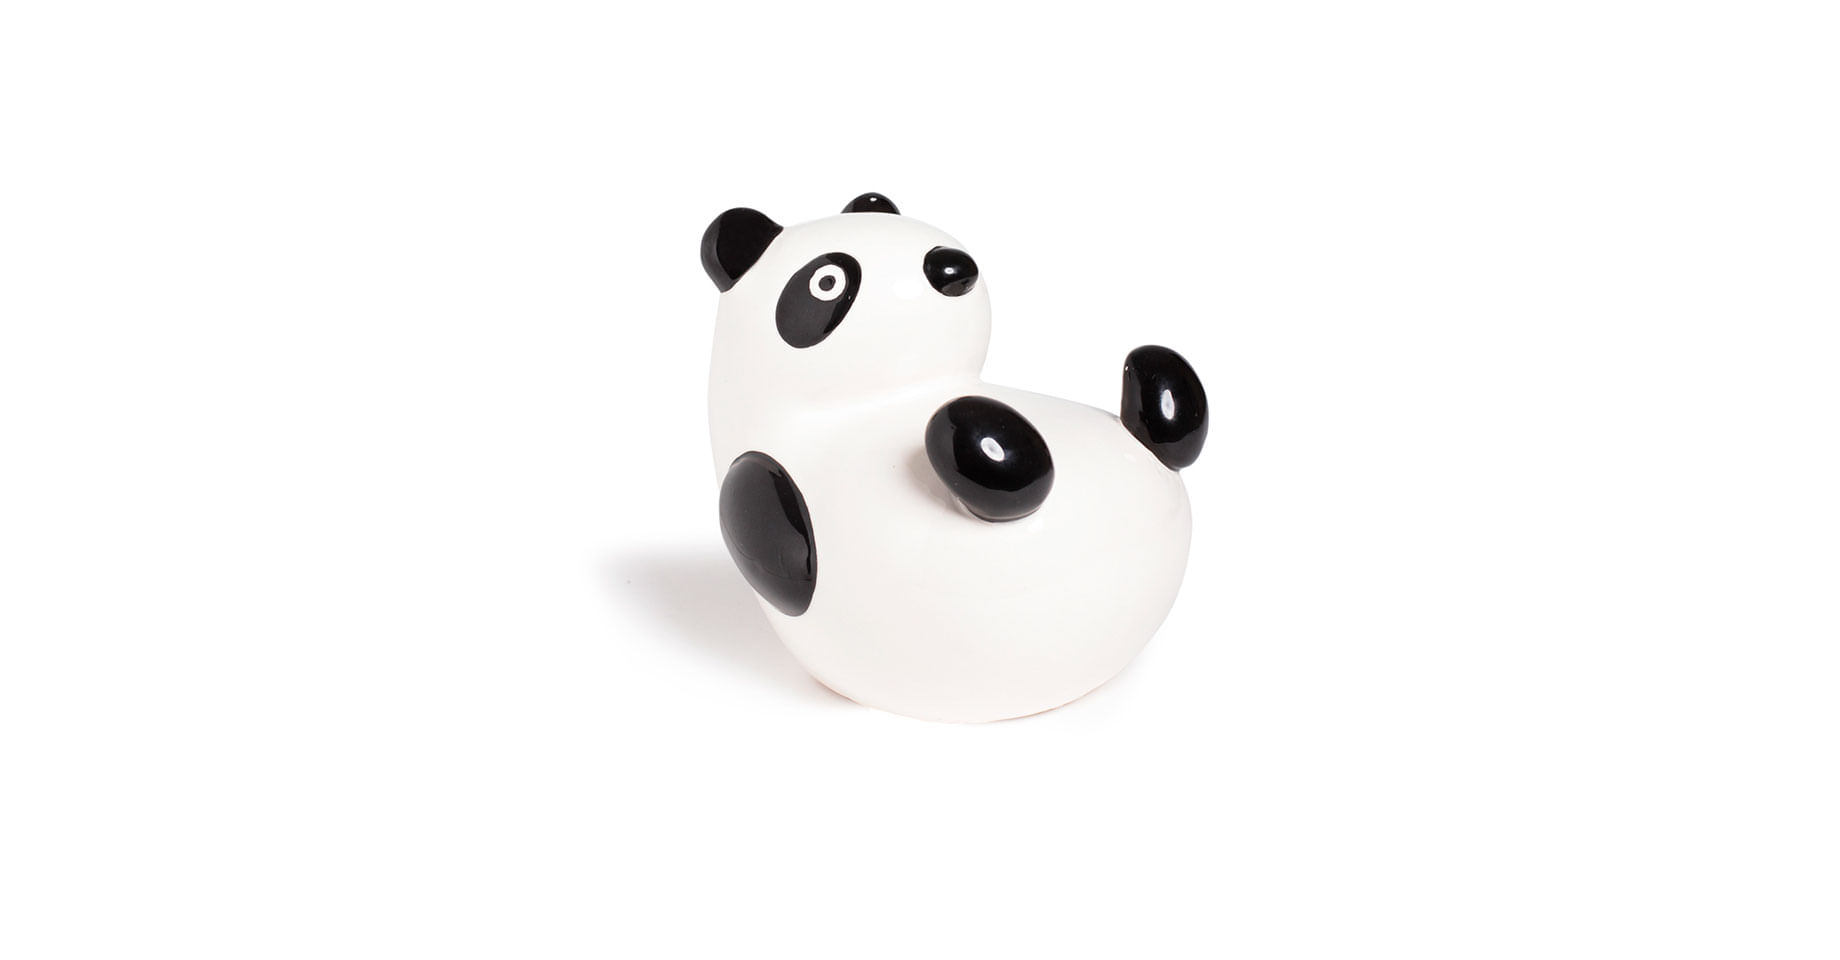 010226286_010_1-DECORATIVO-PANDA-BEAR